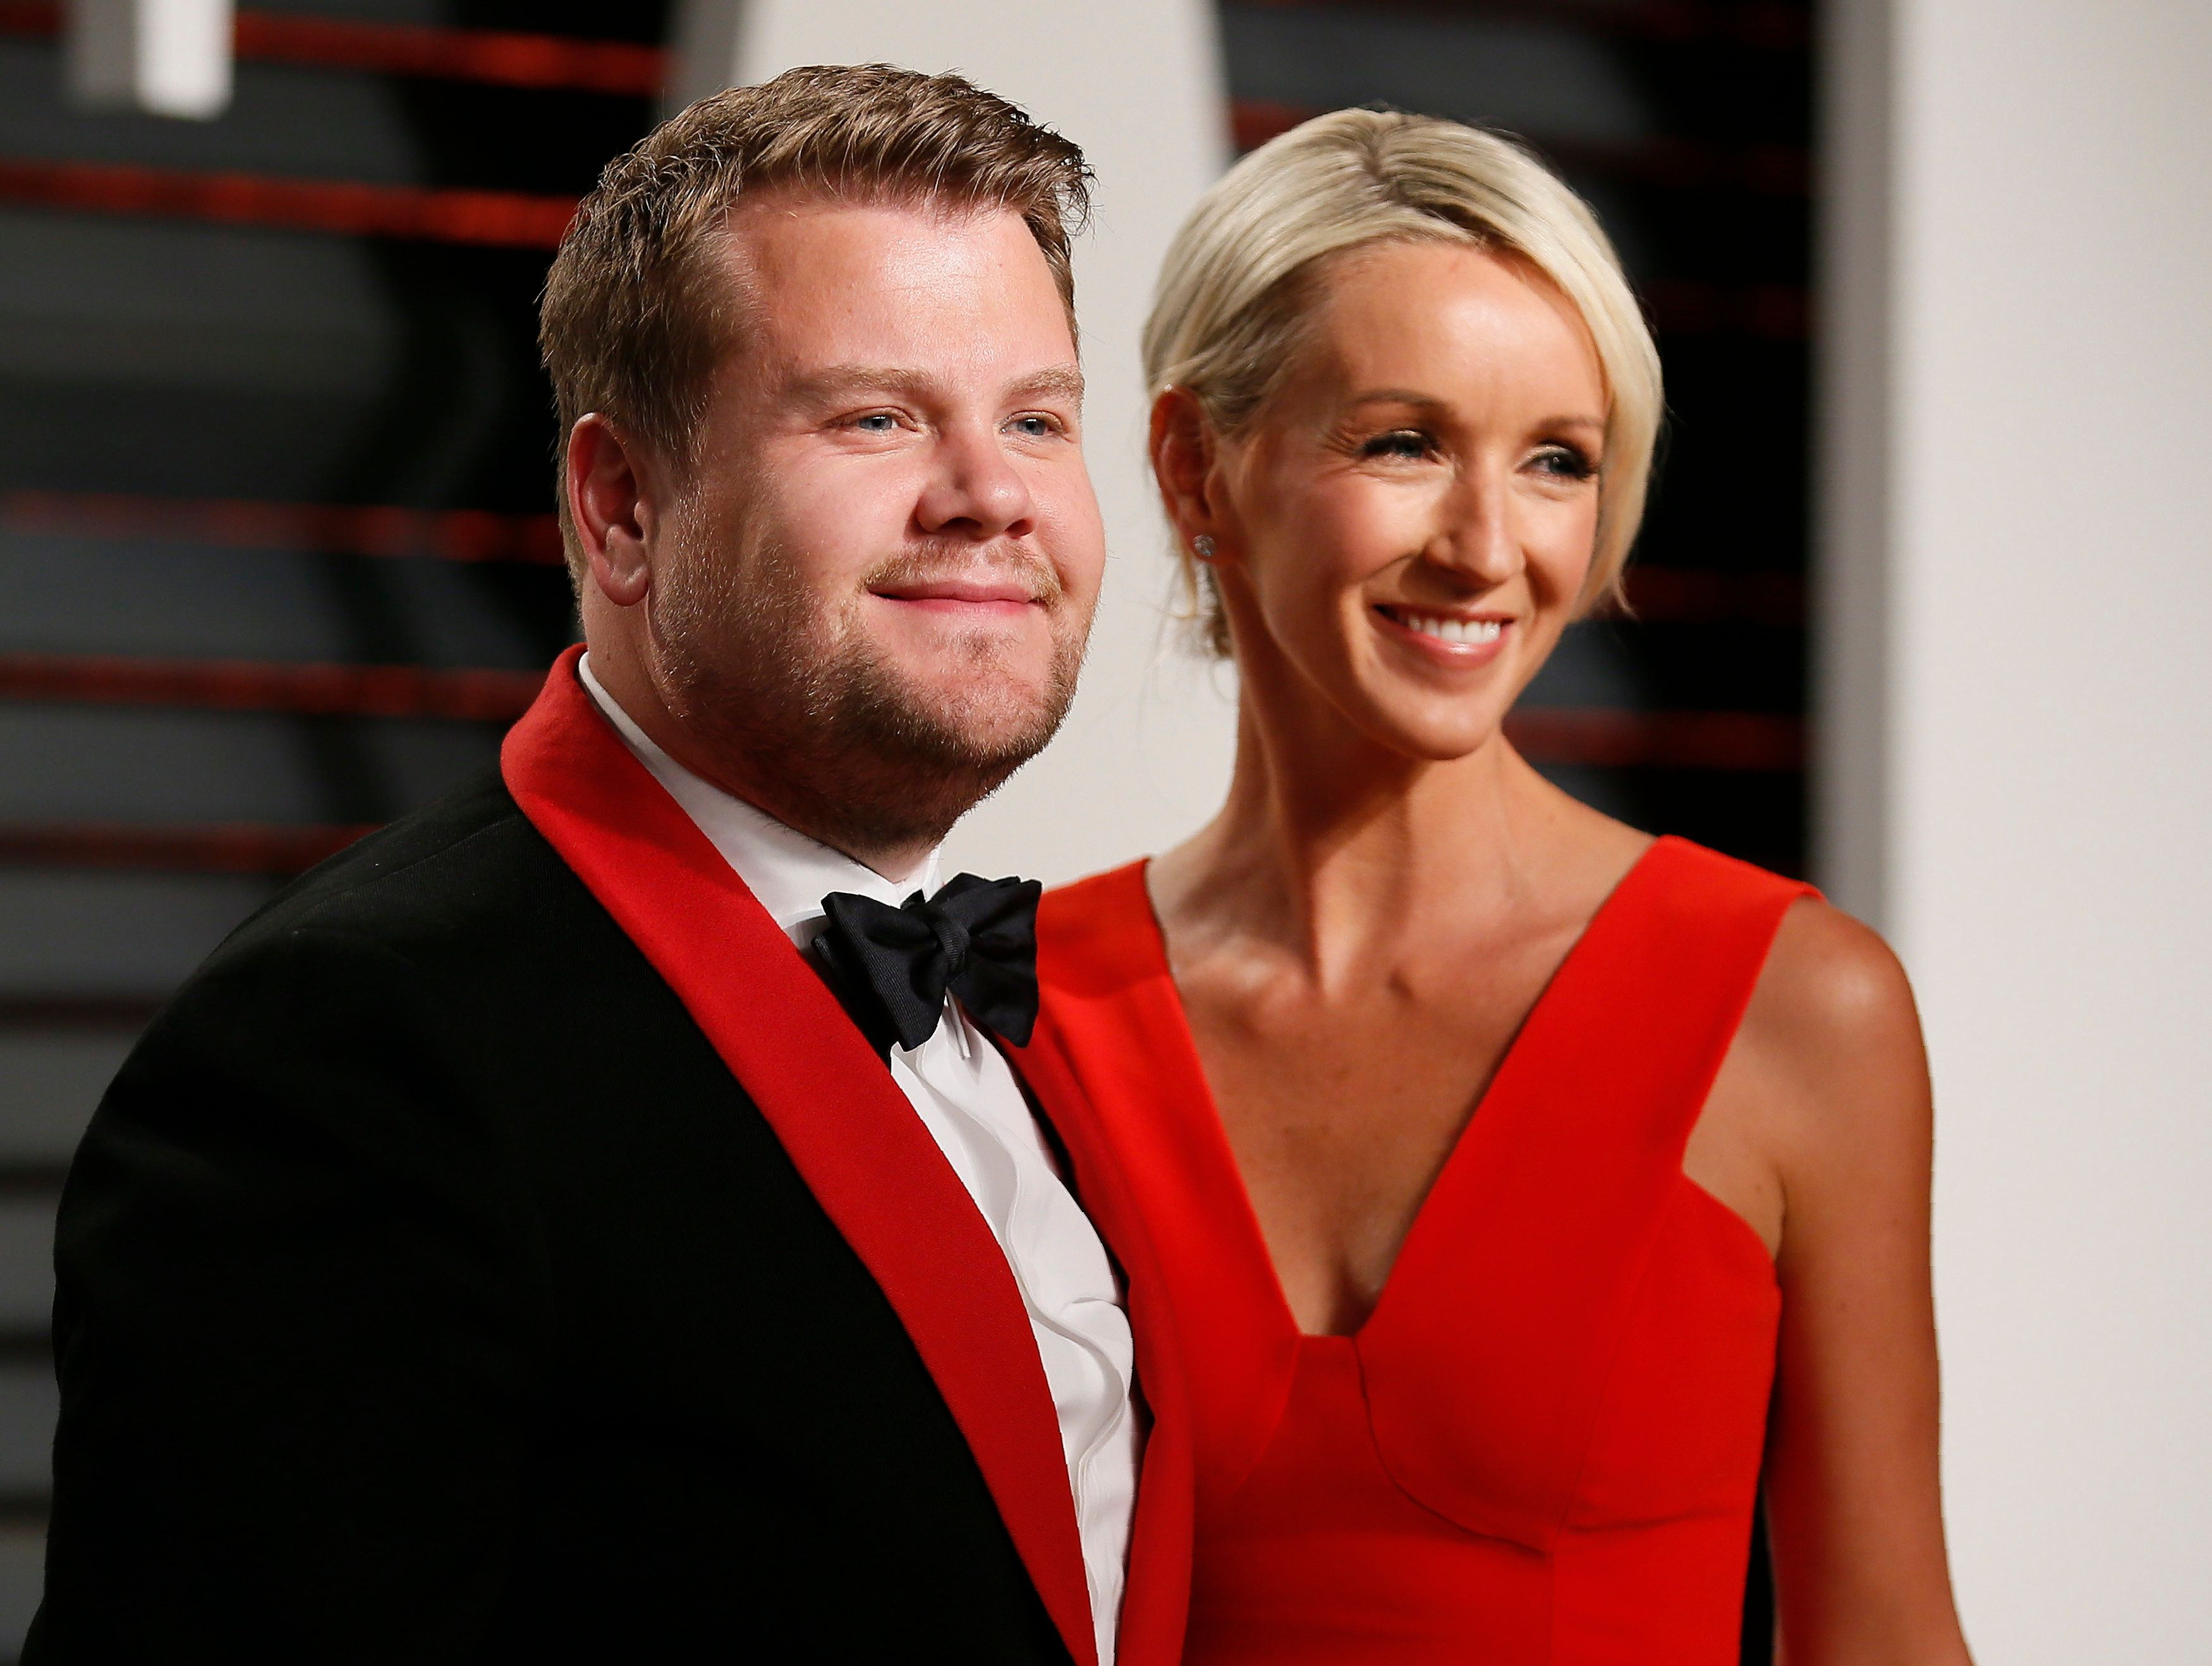 89th Academy Awards - Oscars Vanity Fair Party - Beverly Hills, California, U.S. - 26/02/17 – Comedian James Corden and Julia Carey. REUTERS/Danny Moloshok